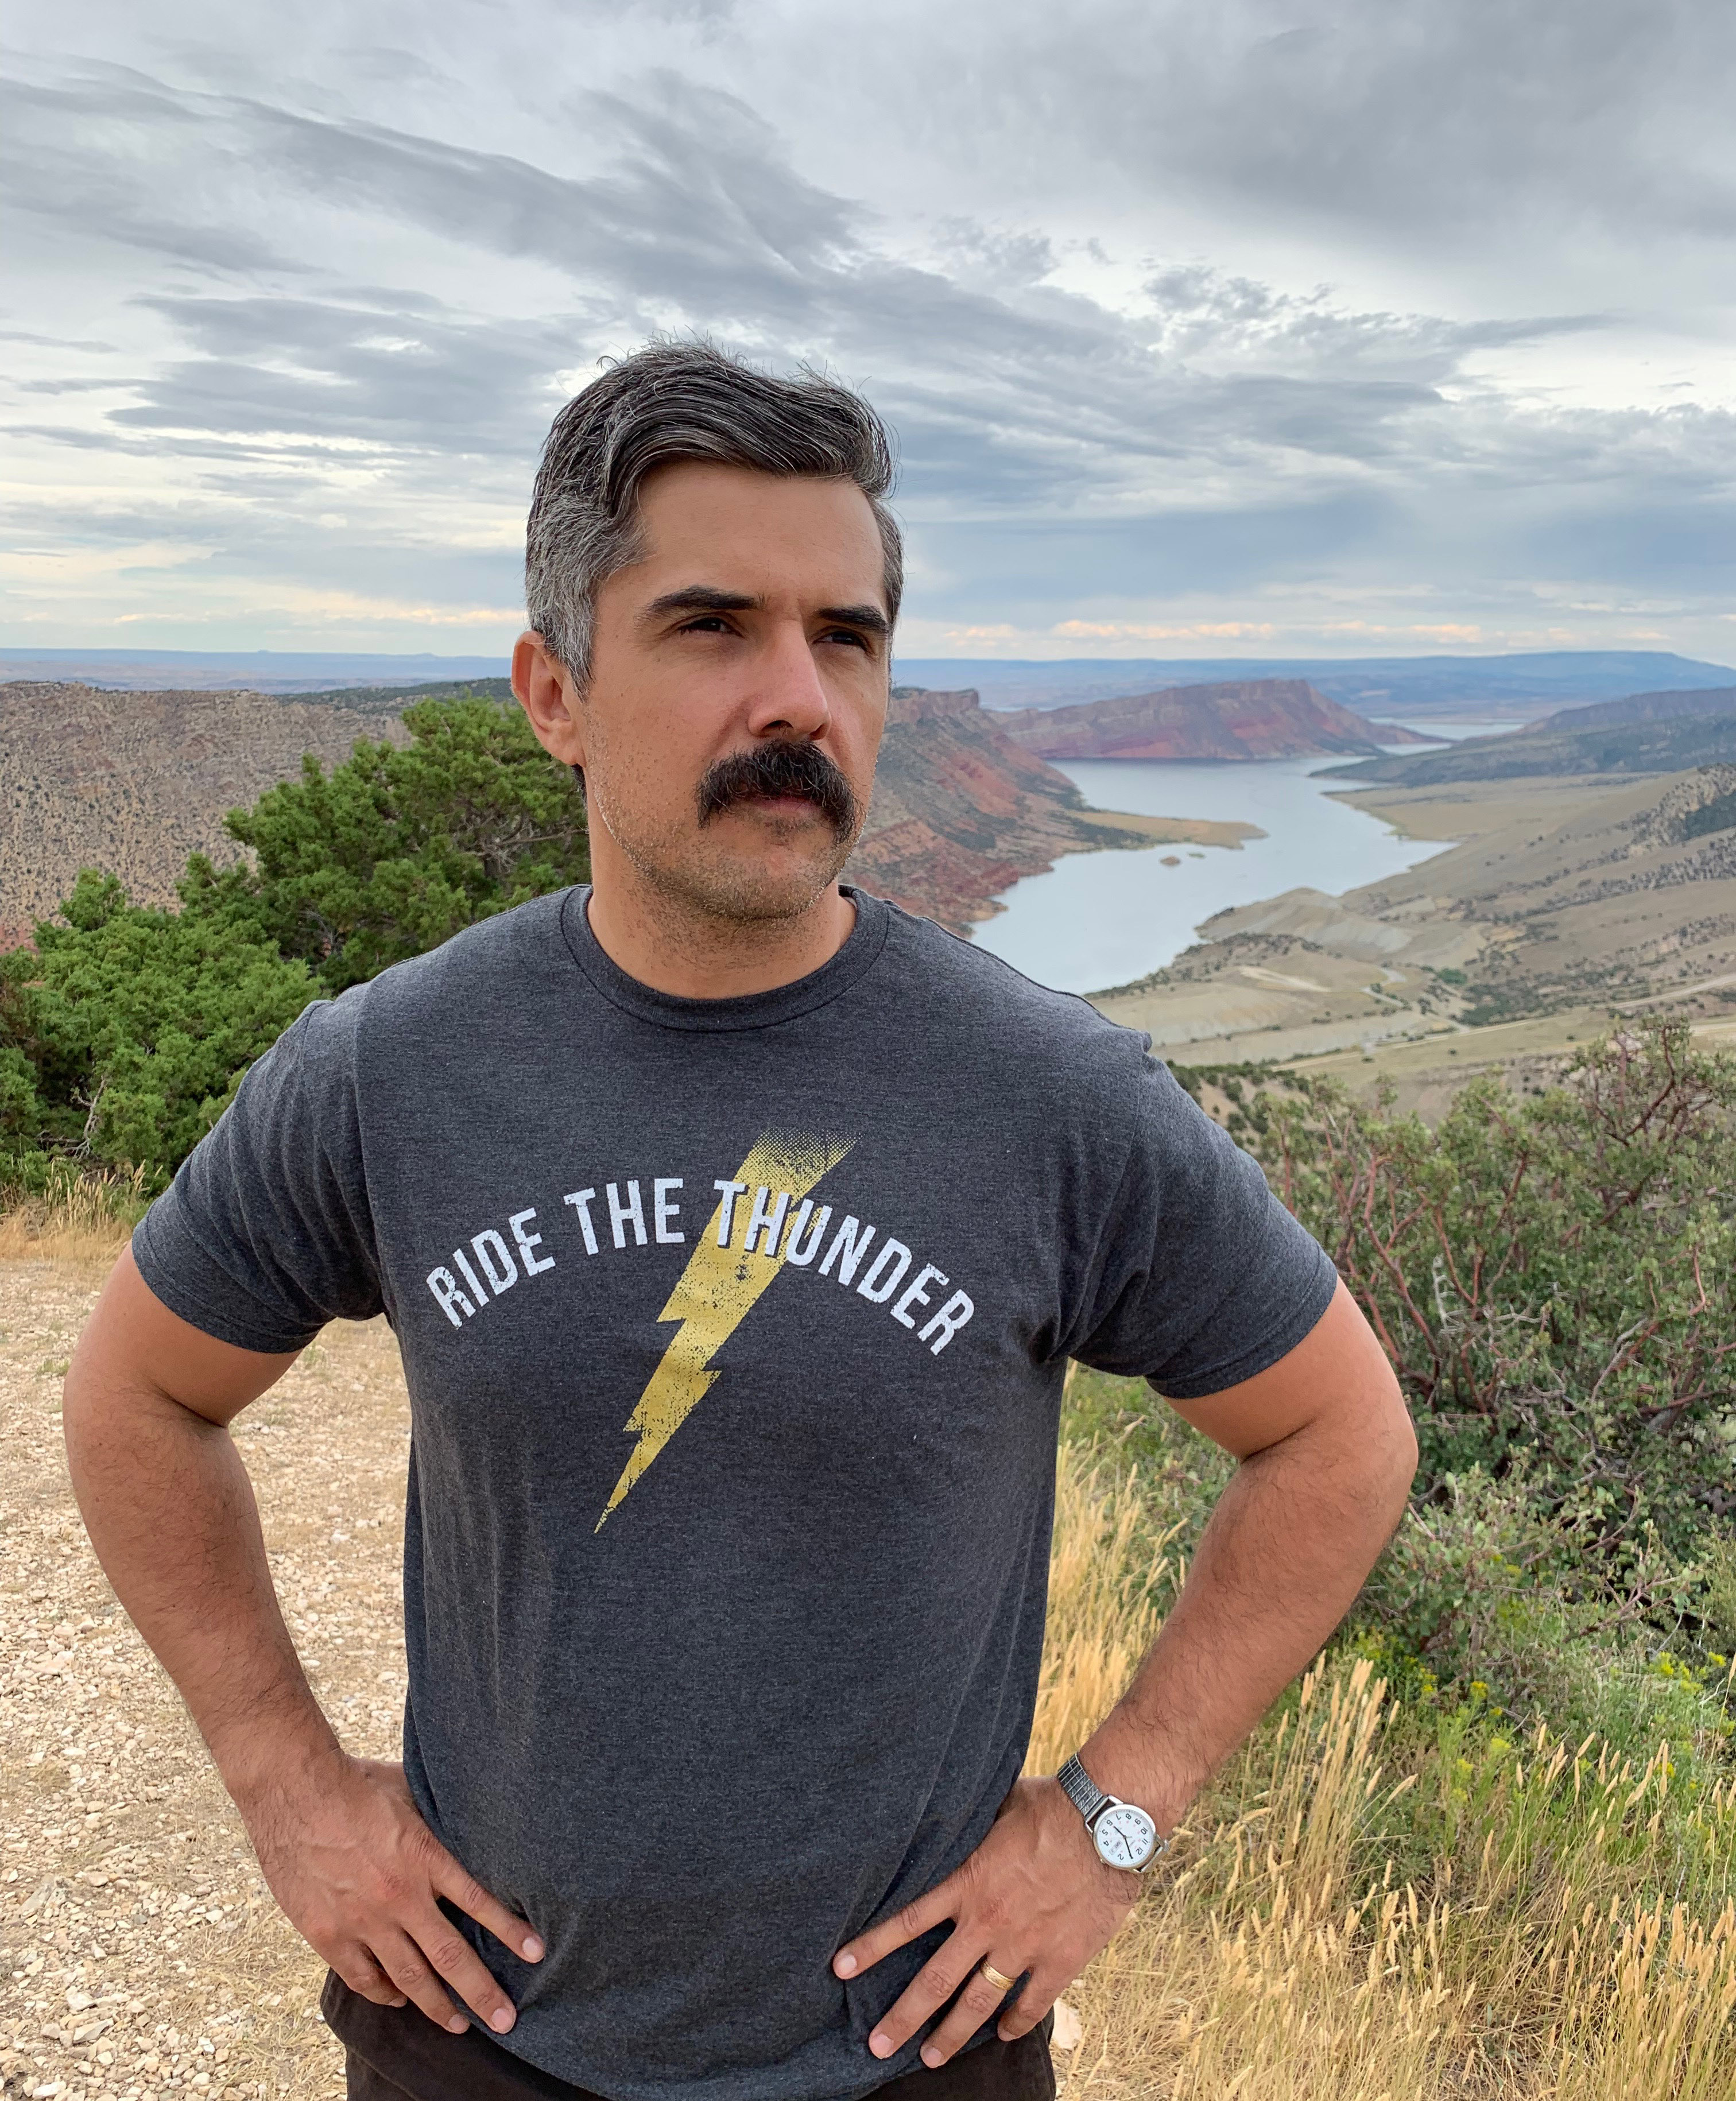 Man standing on a mountain wearing Ride The Thunder shirt.